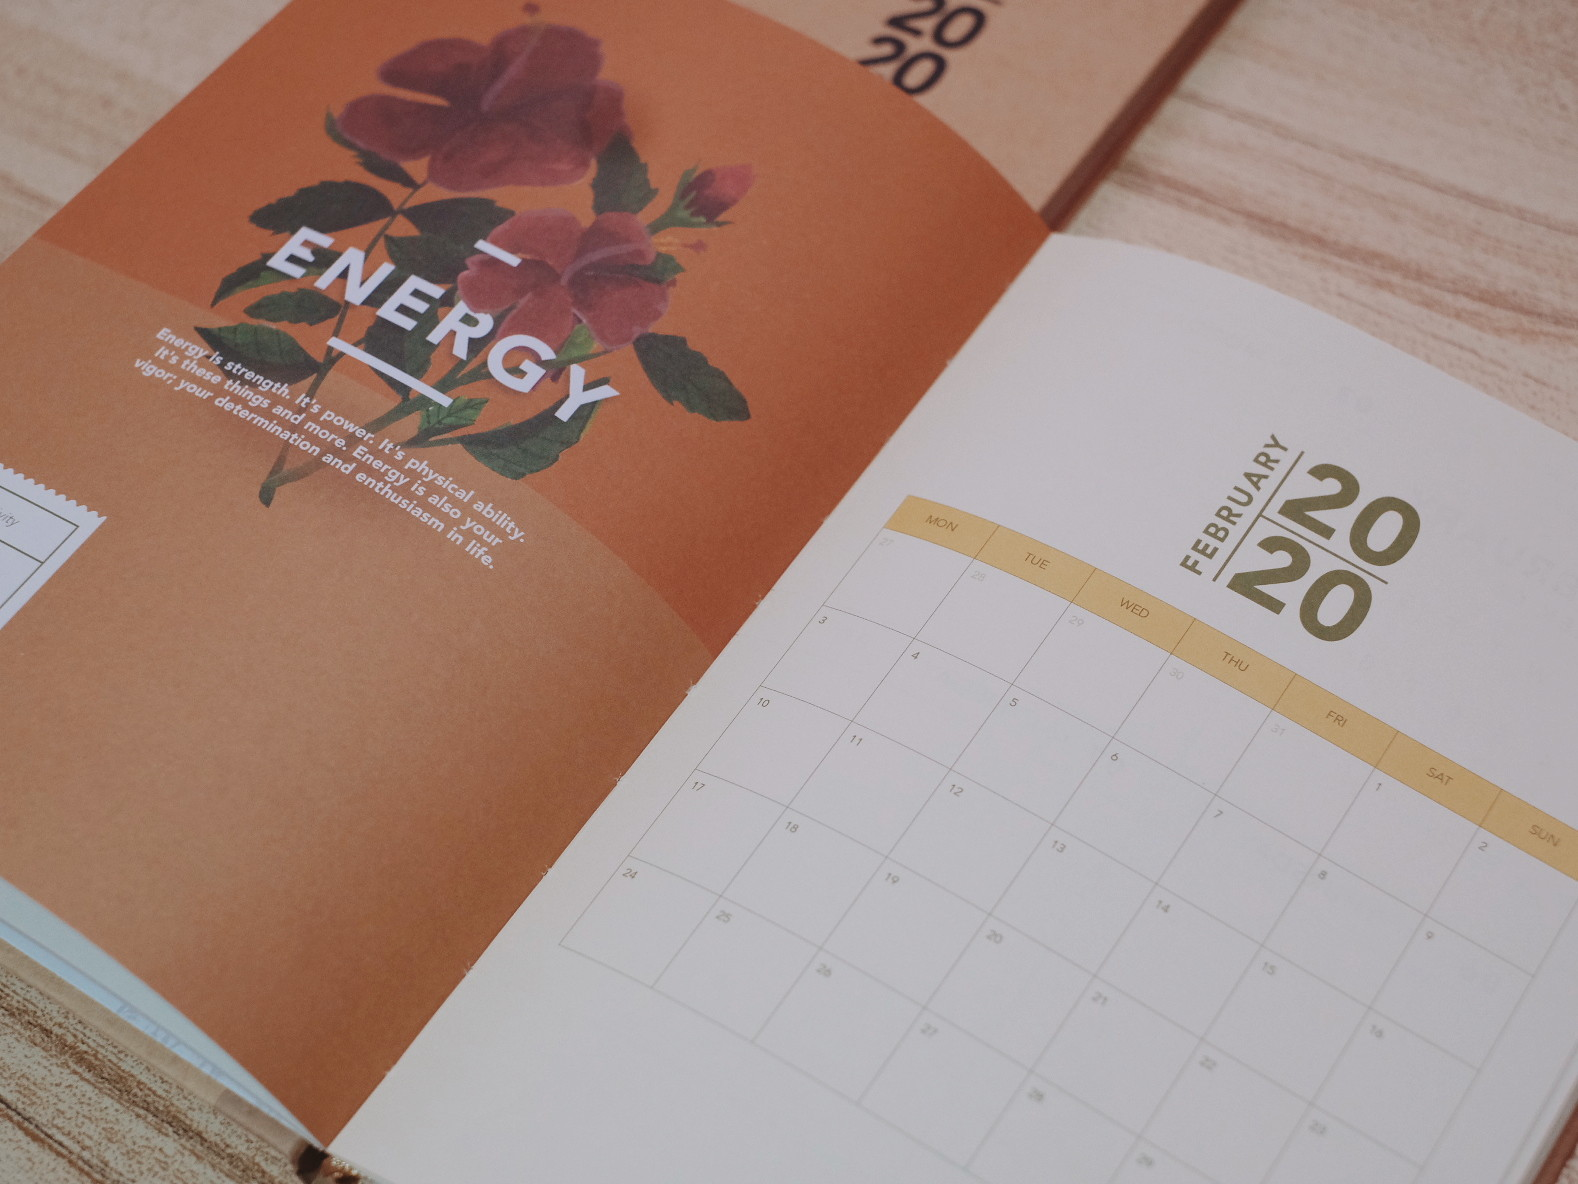 Serenitea Holiday Drinks + Get a FREE Serenitea 2020 Diary